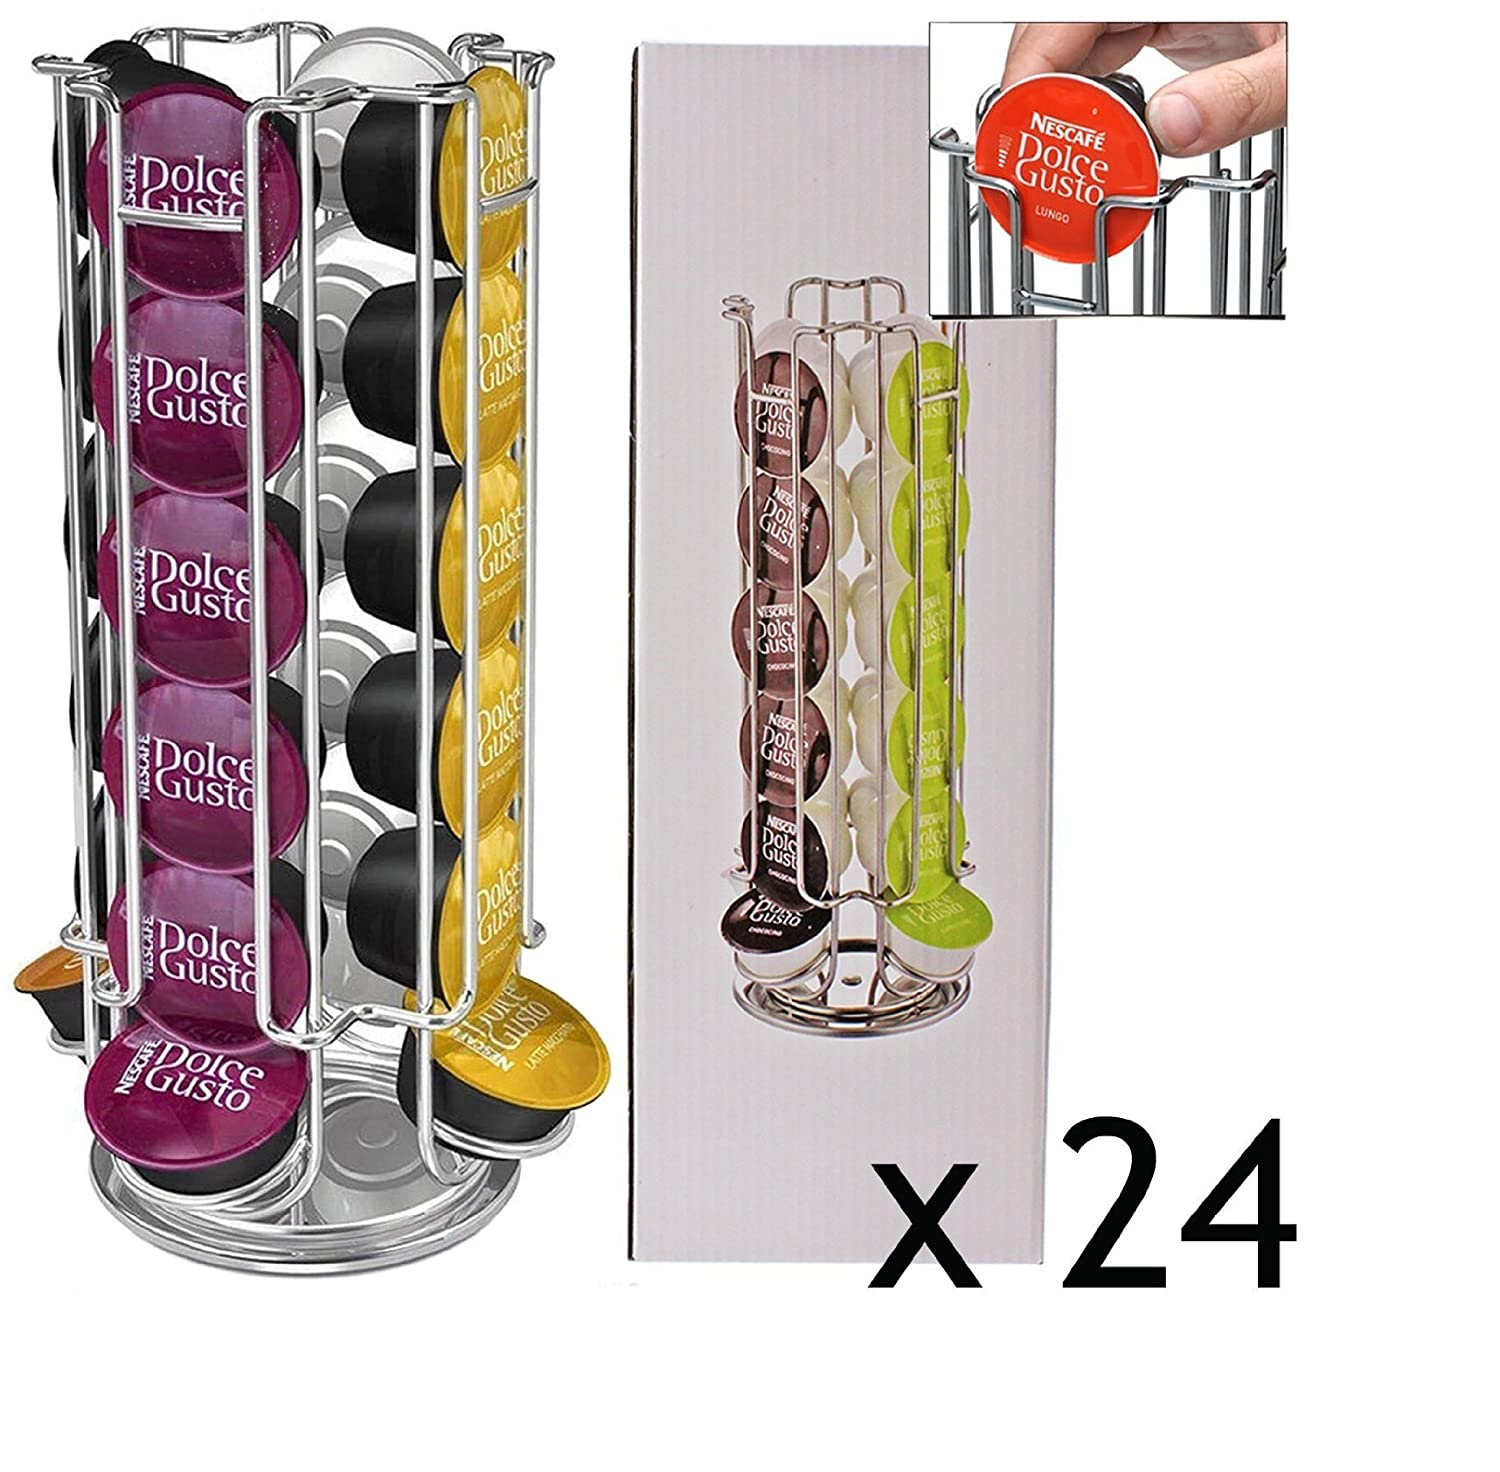 Nescafe Dolce Gusto 24-Coffee Pod Disc Capsule Holder Dispenser Tower Stand, Rotating by RIVENBERT